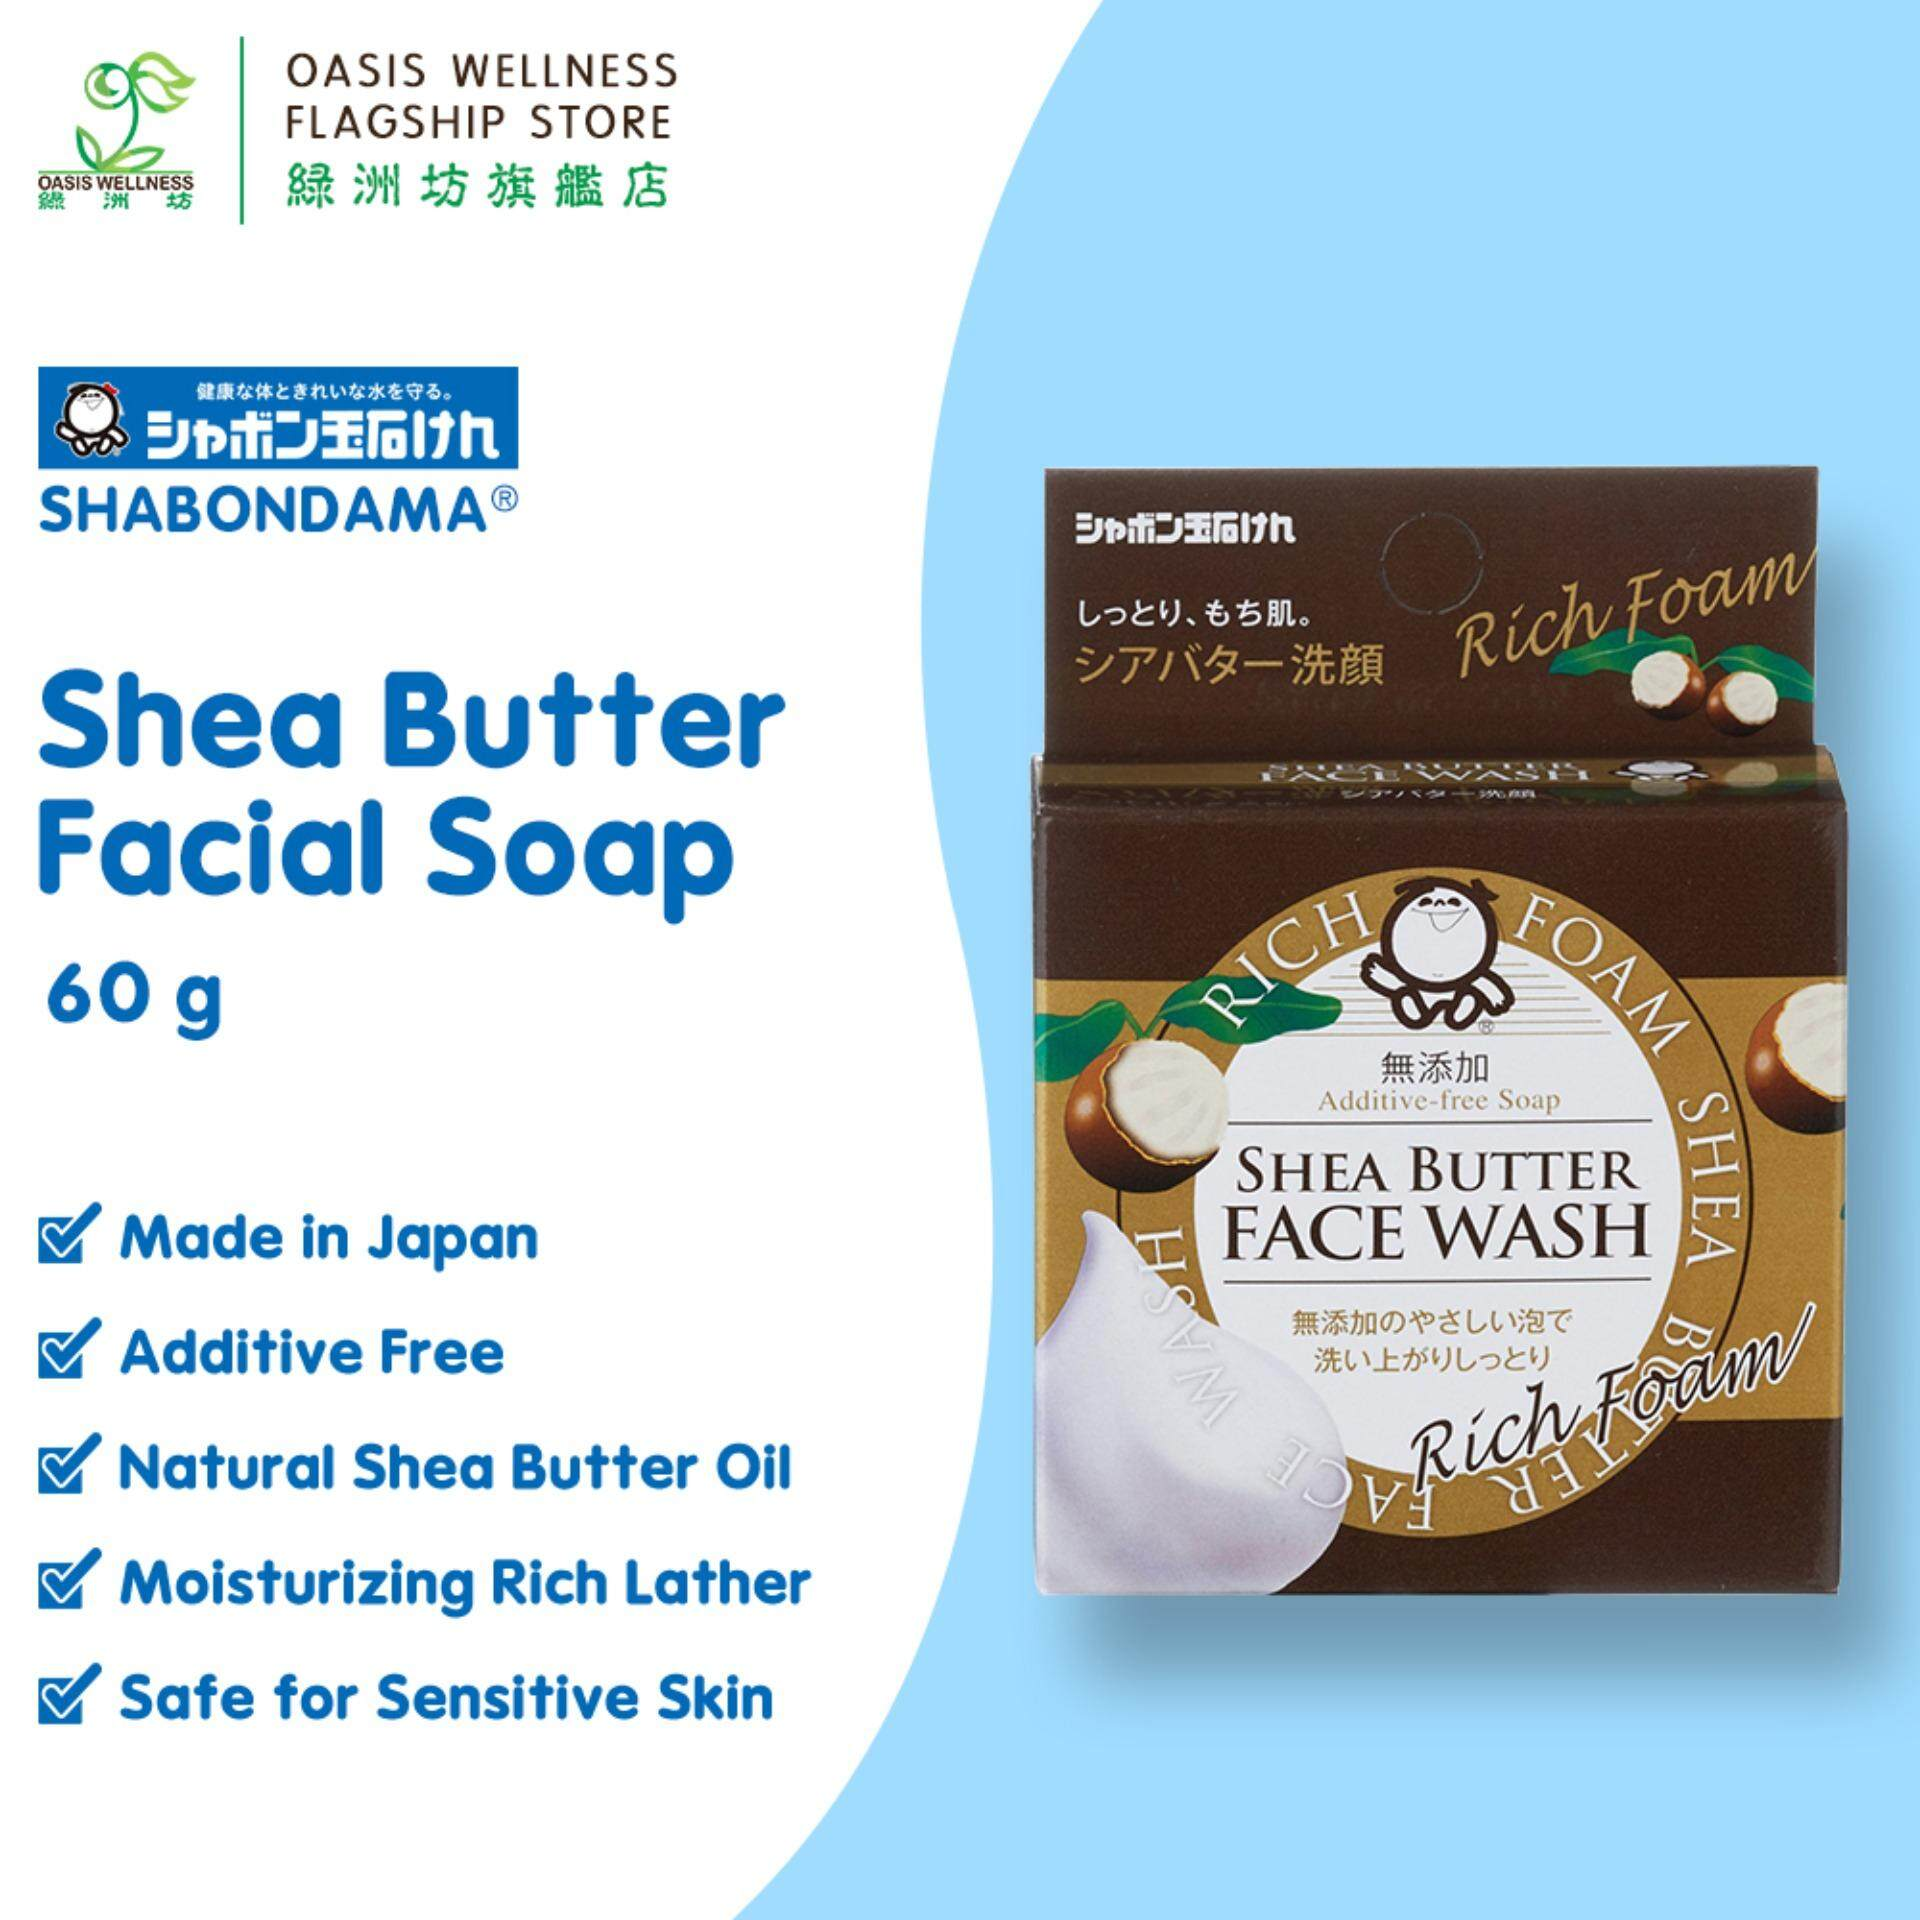 Shabondama Shea Butter Face Wash Soap Bar (60g) - Natural Shea Butter Oil - Sabun Muka Shea Butter - シャボン玉石けん 乳油木保湿洗颜肥皂 (60克)